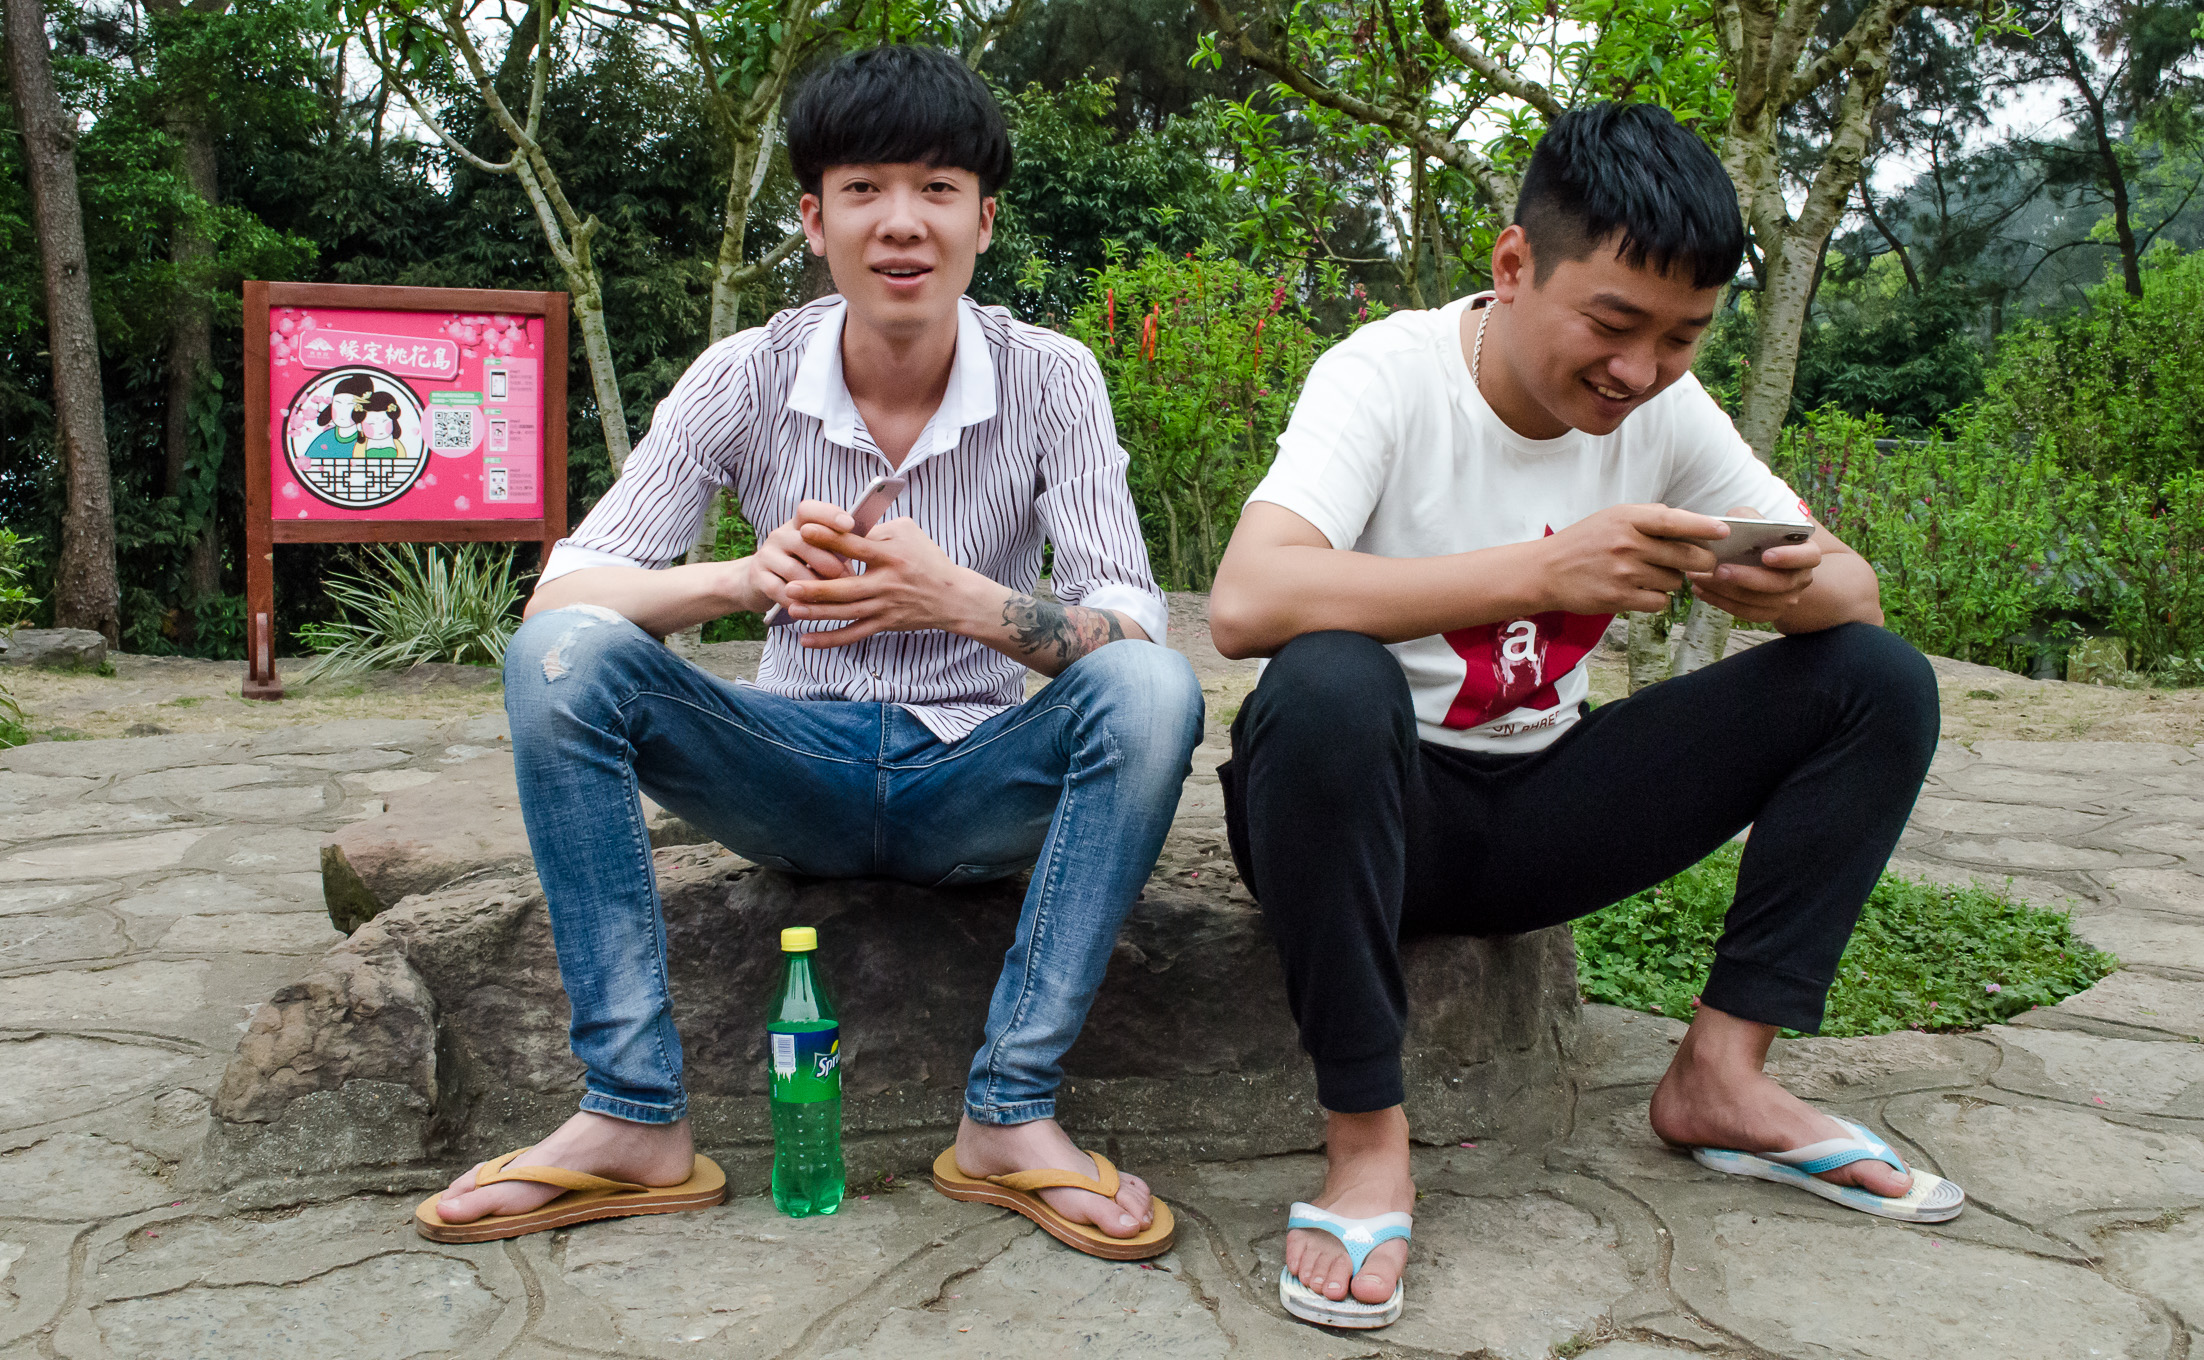 Crossing cultural boundaries for the youth of China